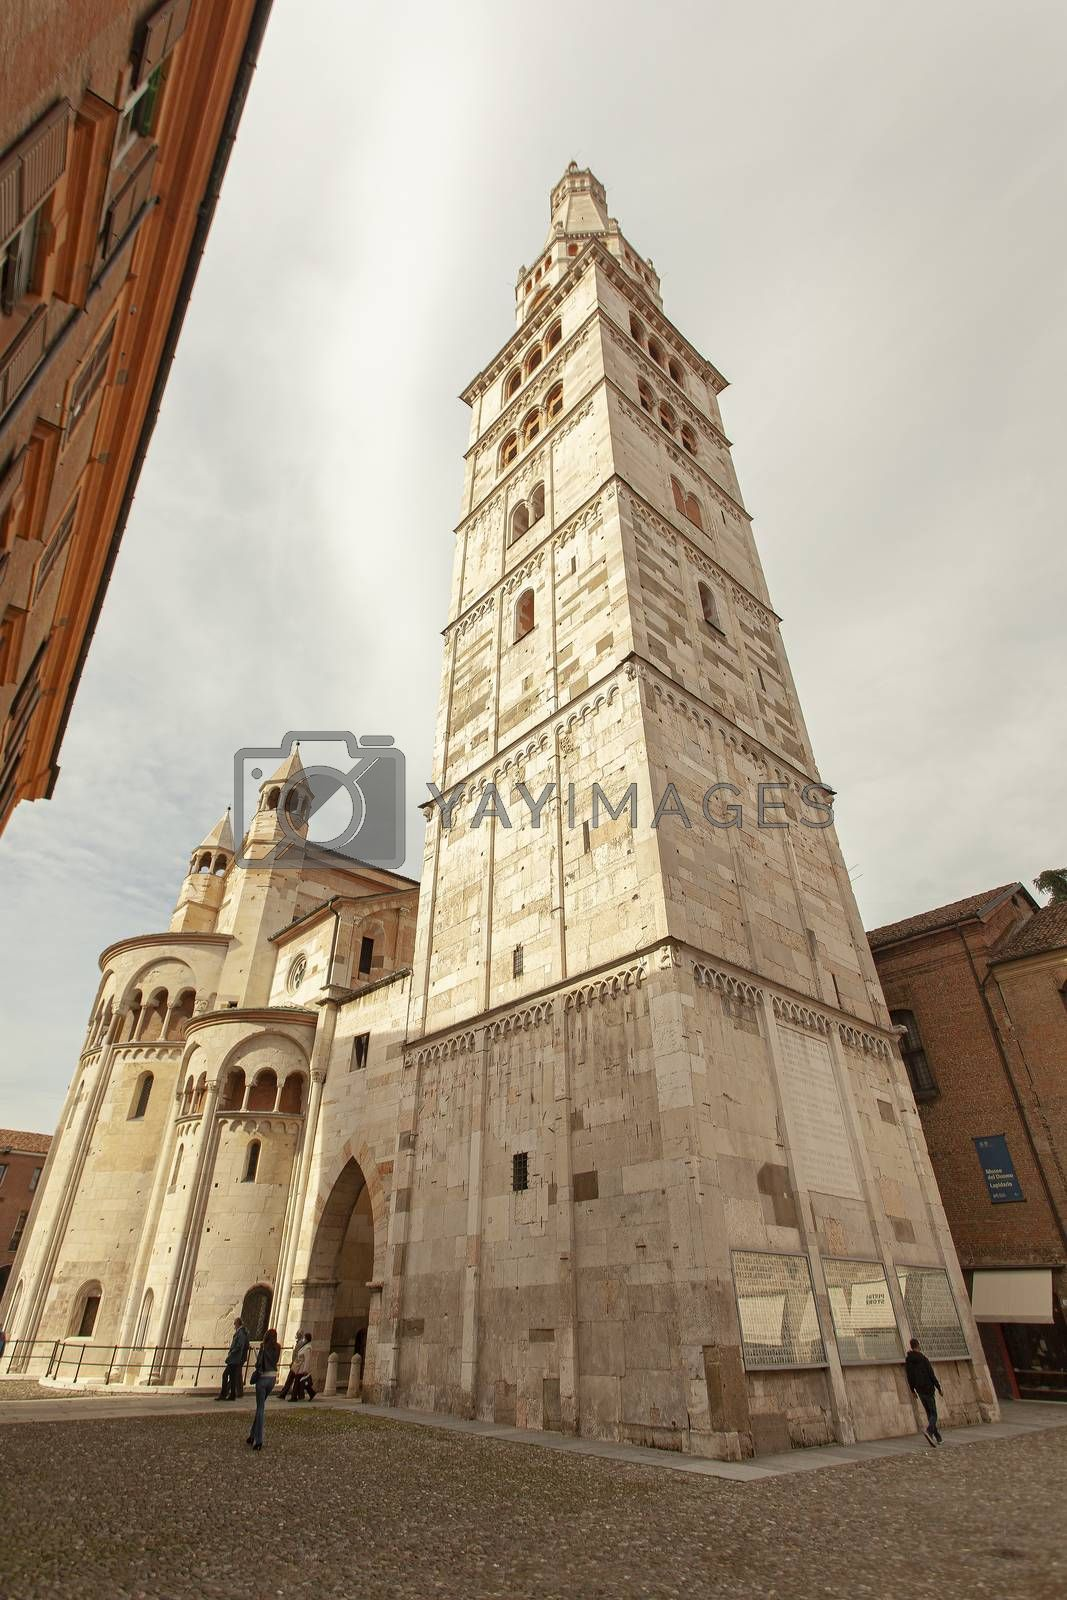 MODENA, ITALY 1 OCTOBER 2020: Ghirlandina tower detail in Modena